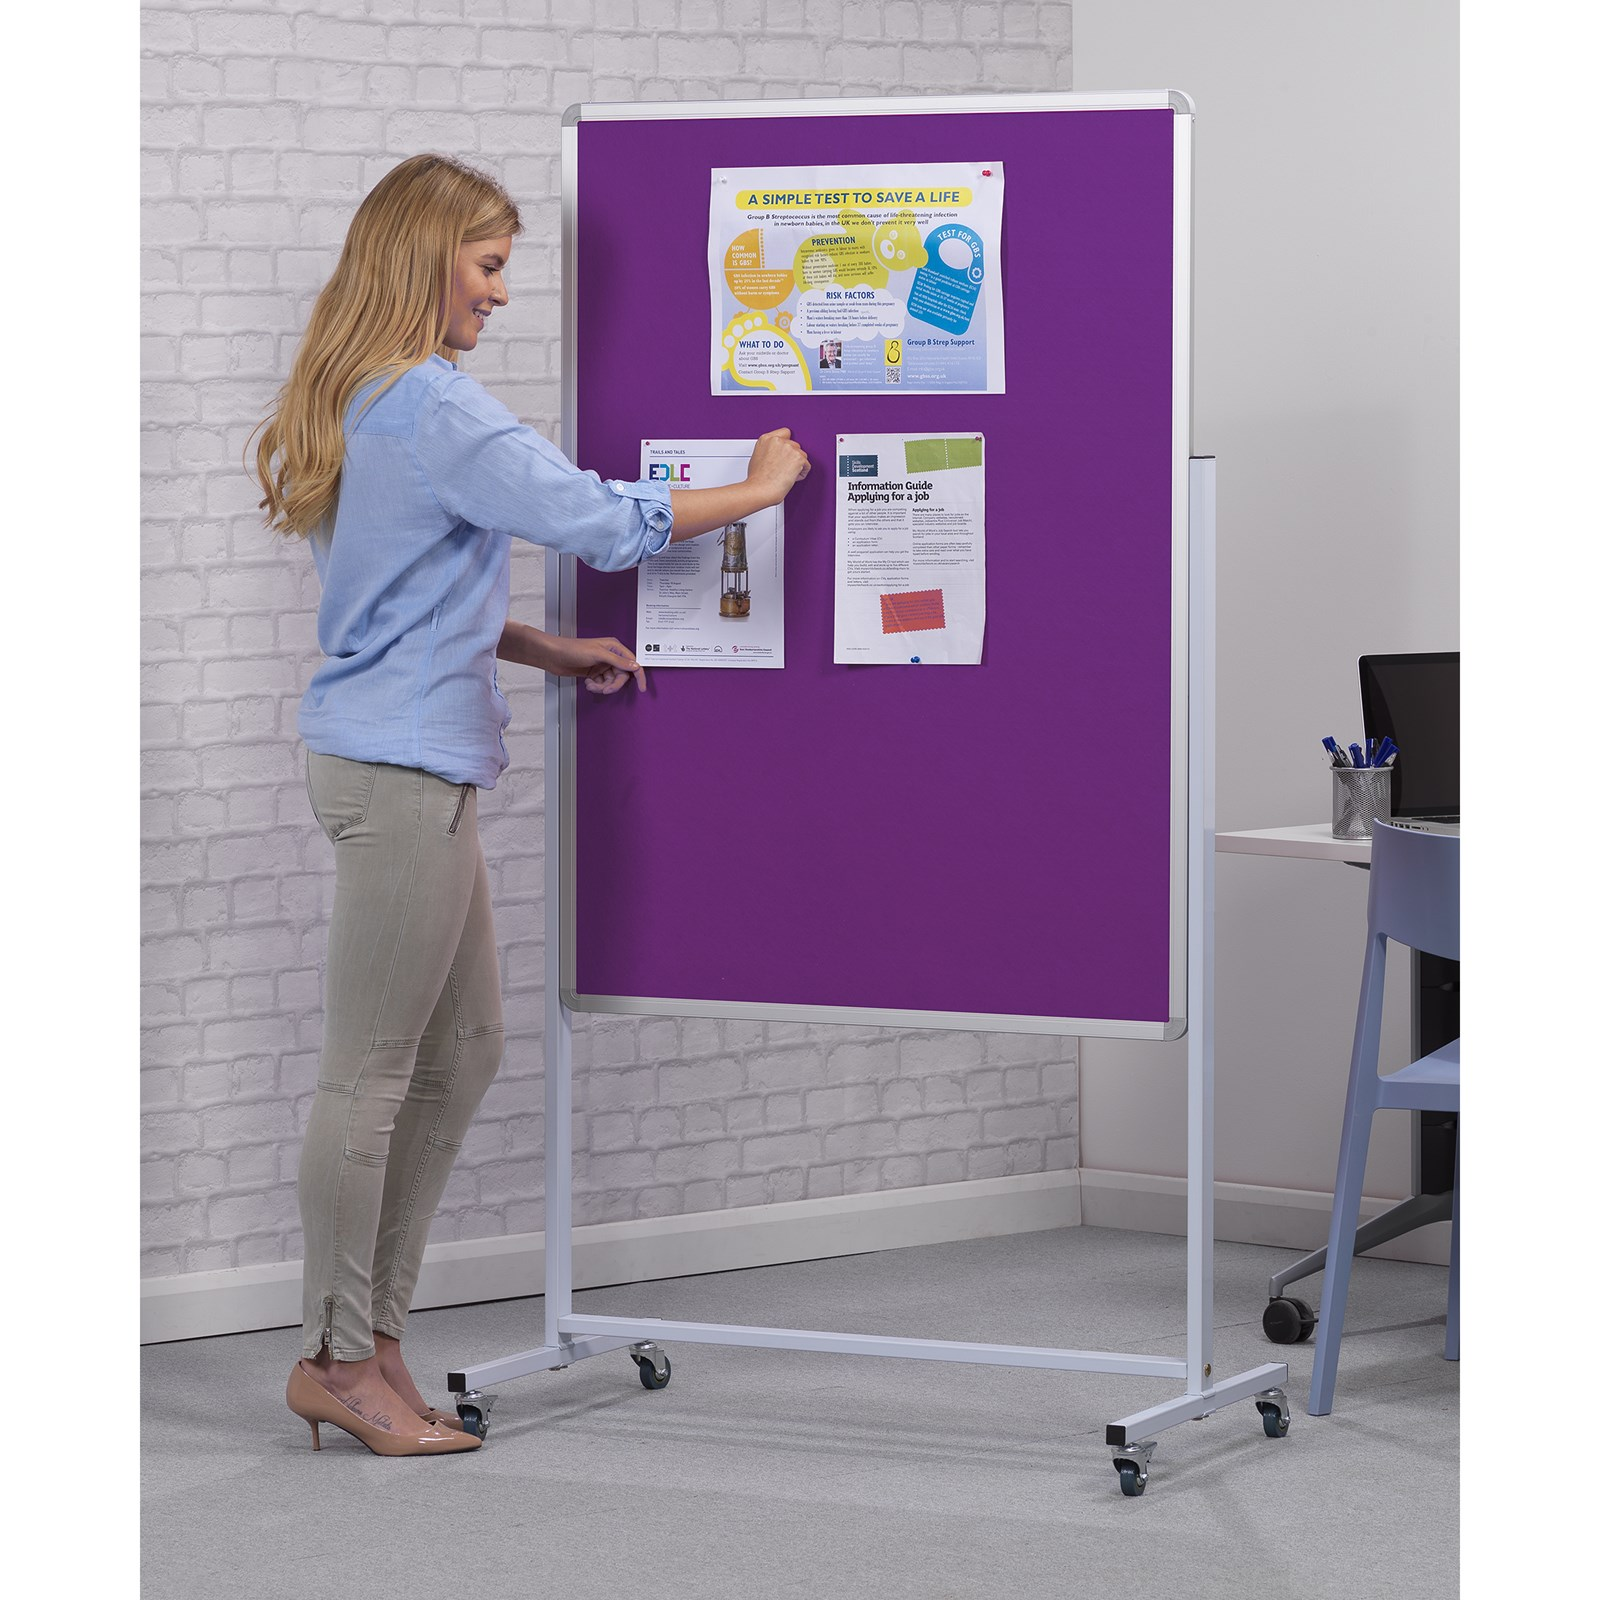 Accents Mobile Noticeboard - Light Green 12x15